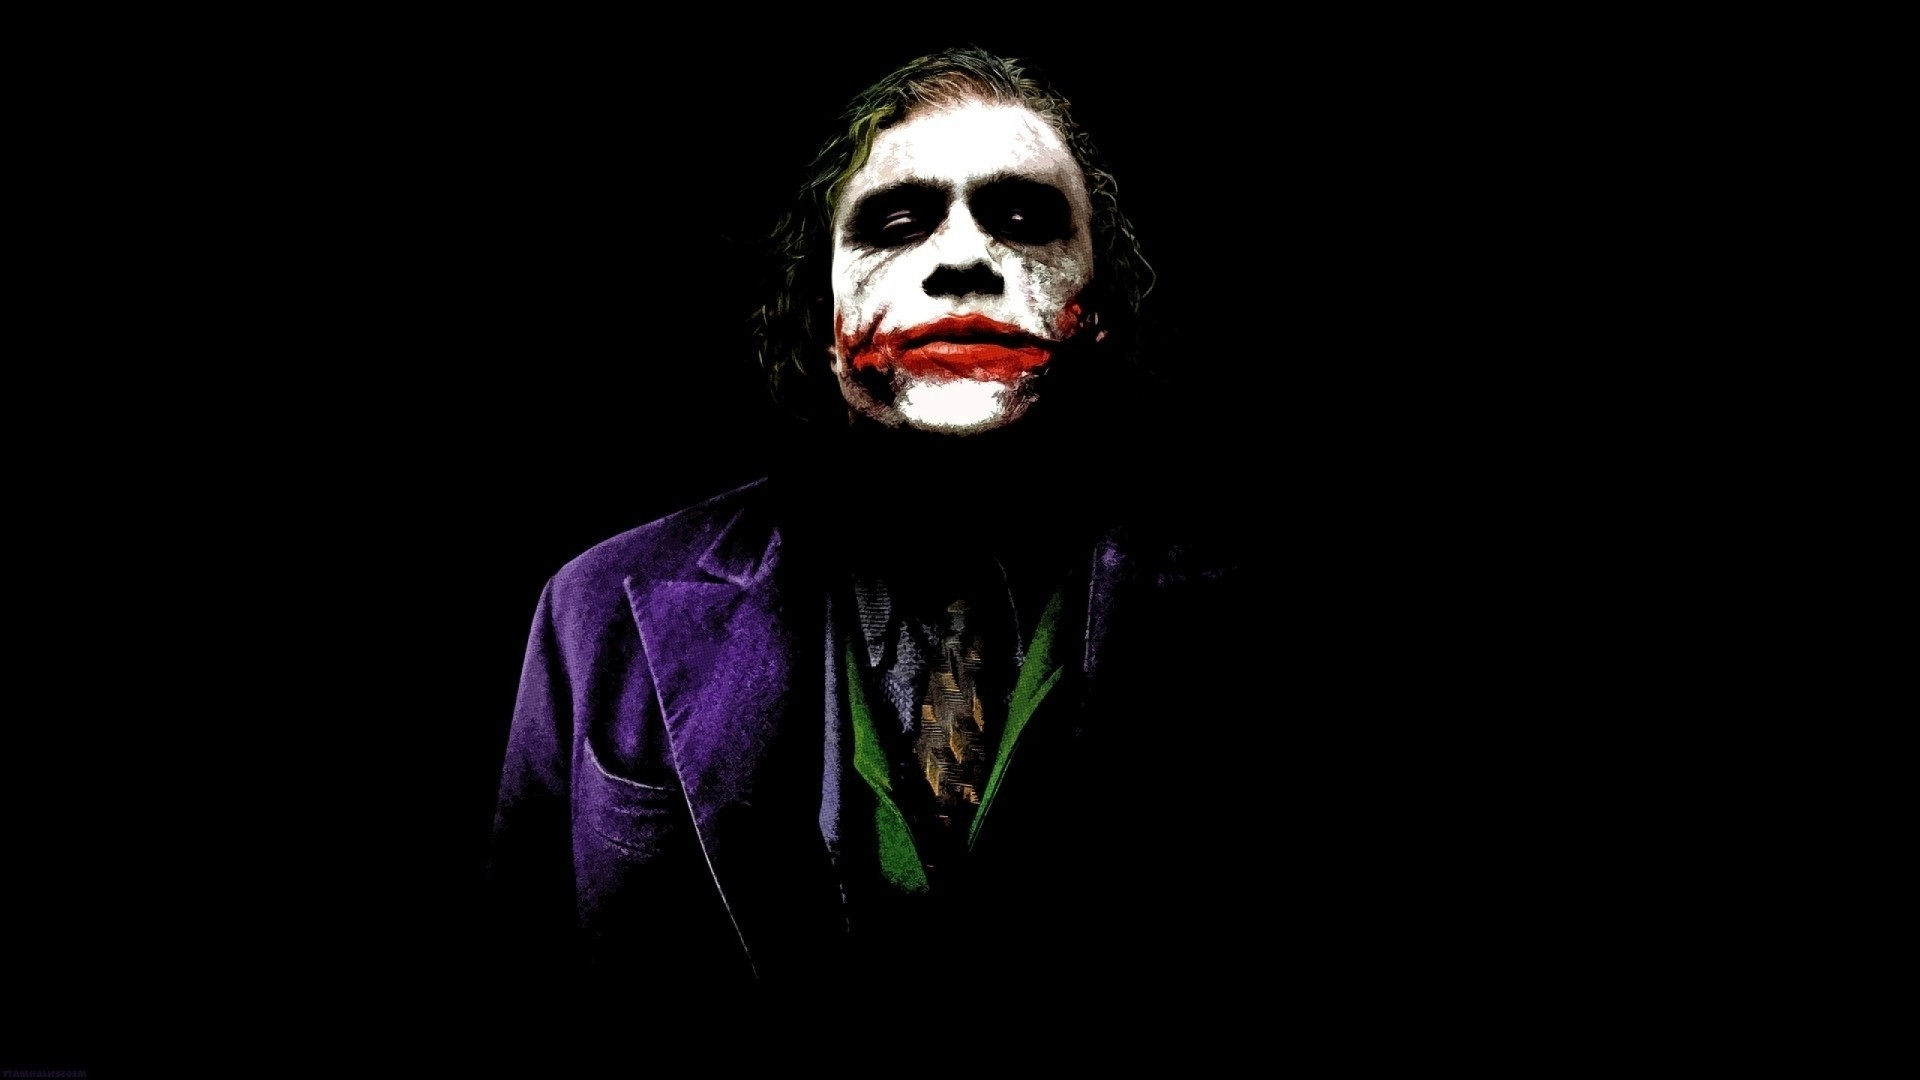 1920x1080 Heath Ledger Joker Wallpaper Hd Free Download